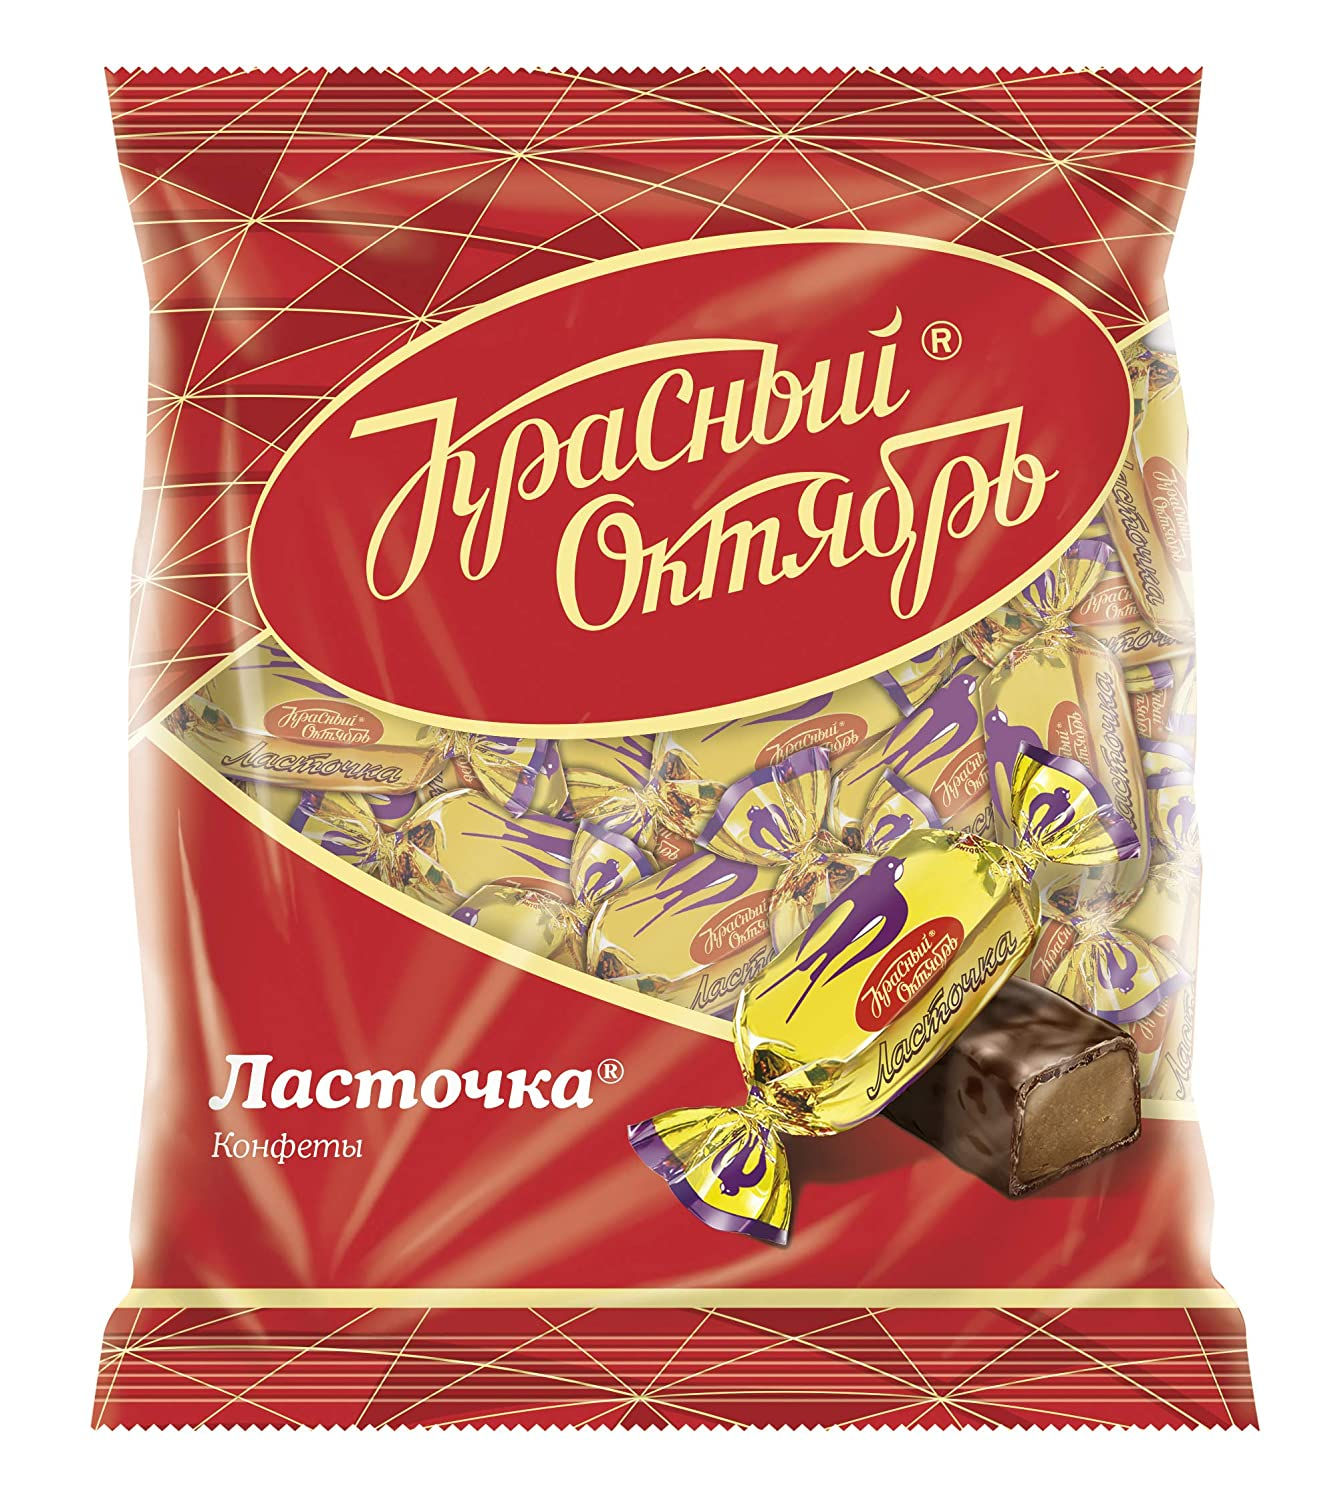 Lastochka Chocolate Fondant Candies Gourmet Bars online shopping 250g Impo Be super welcome 8.8oz